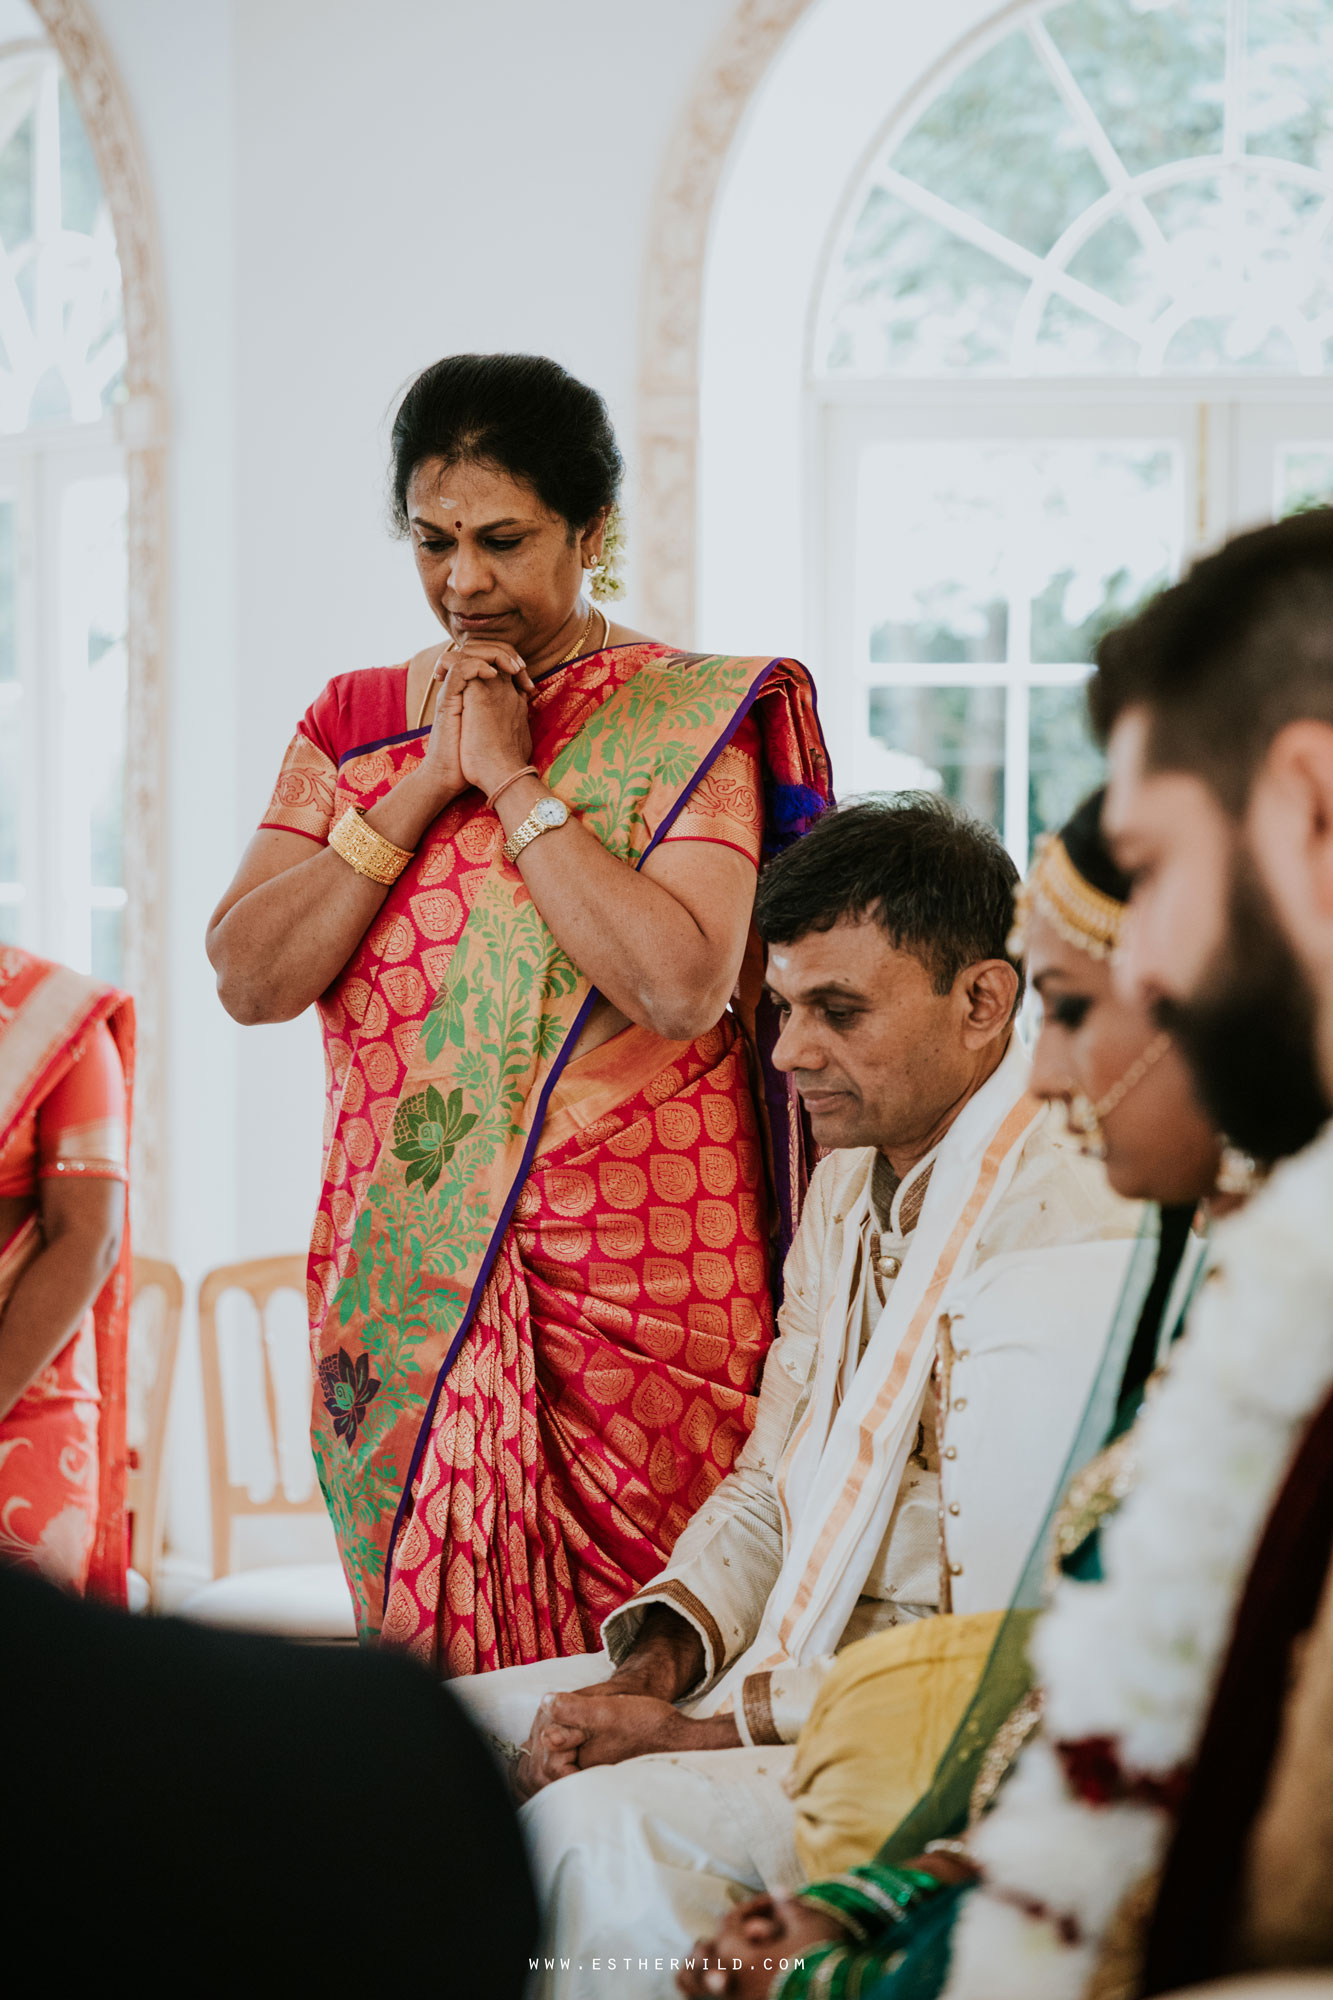 Northbrook_Park_Farnham_Surrey_London_Wedding_Hindu_Fusion_Esther_Wild_Photographer_IMG_4053.jpg